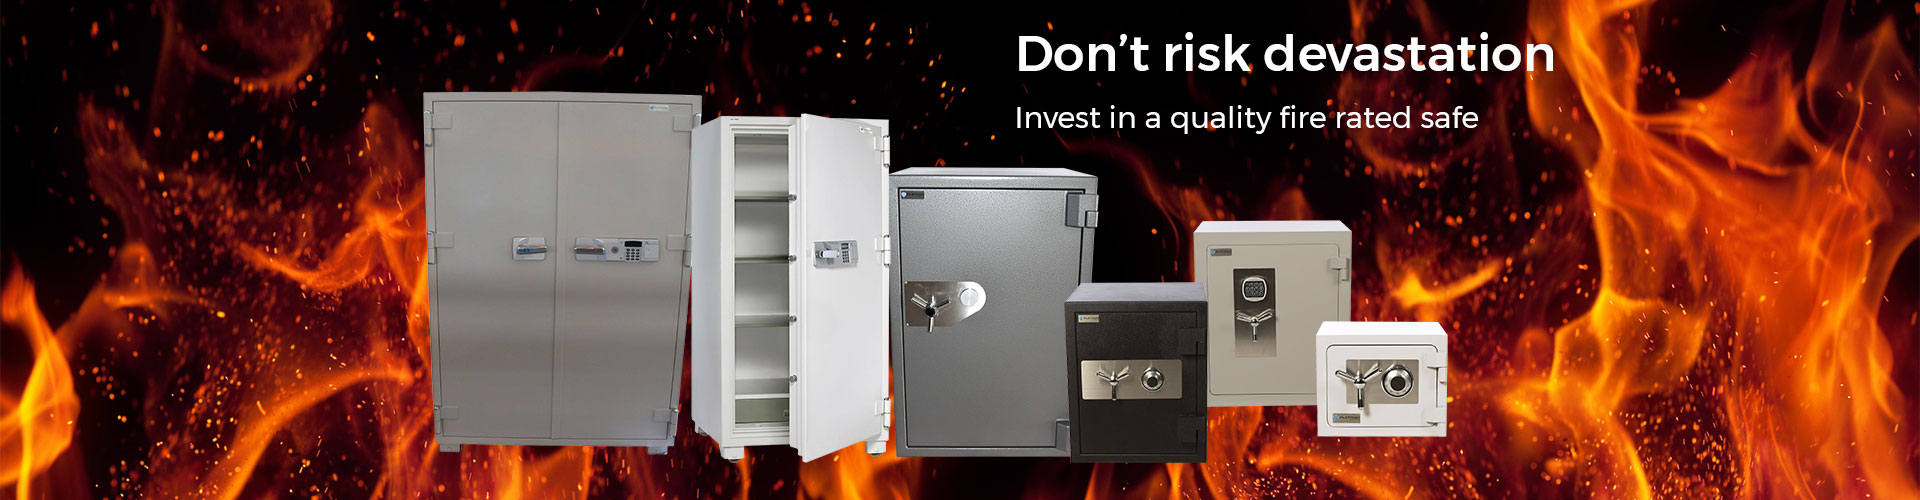 Don't risk devastation. Invest in a quality fire rated safe.